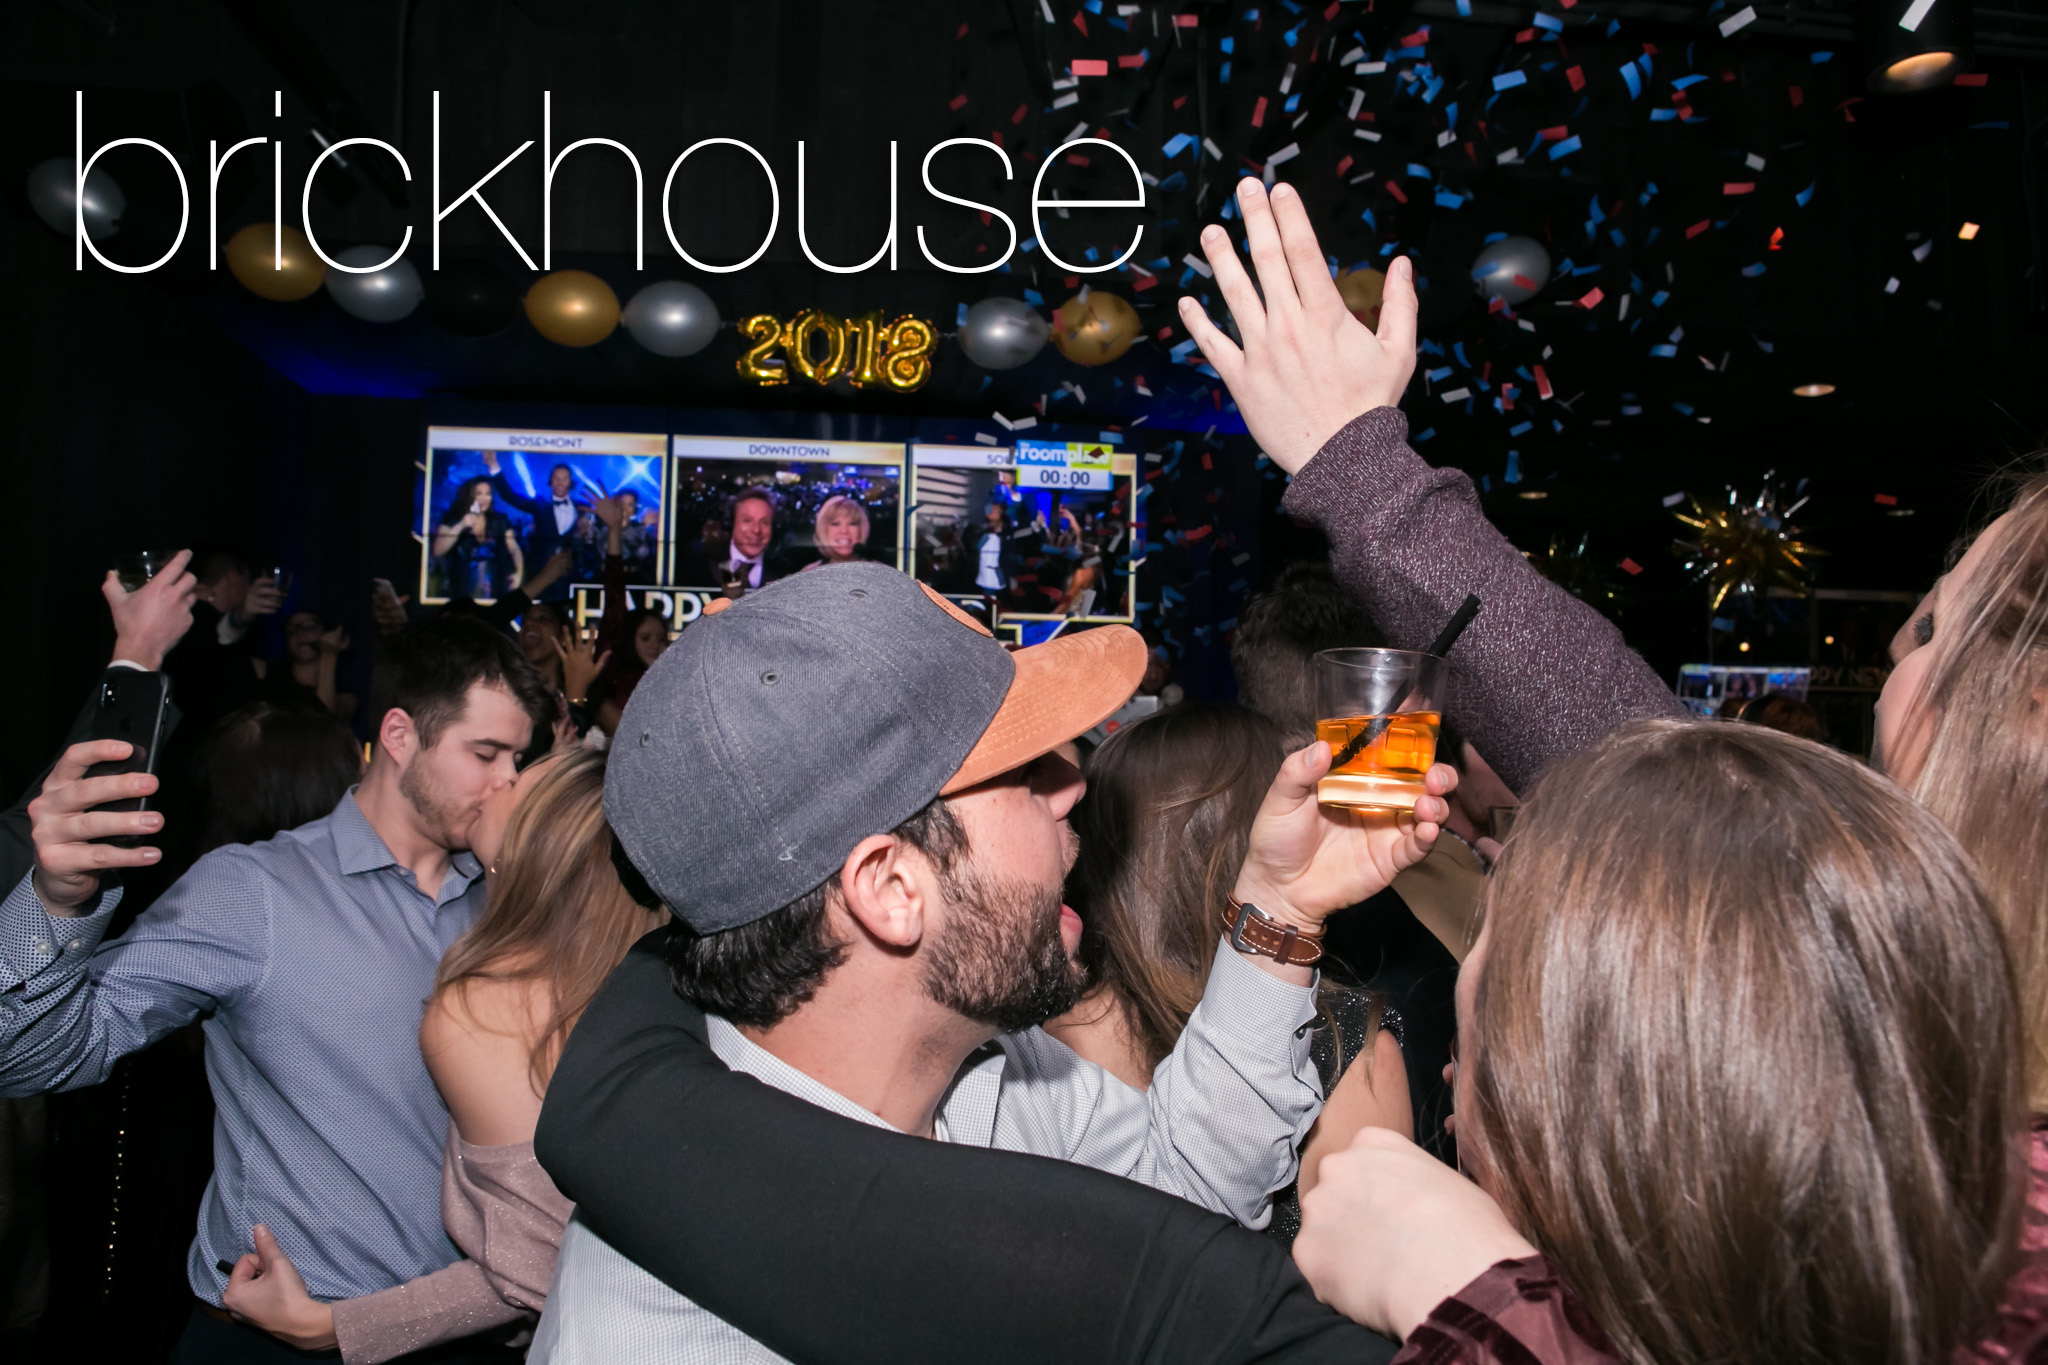 New Year's Eve at Brickhouse